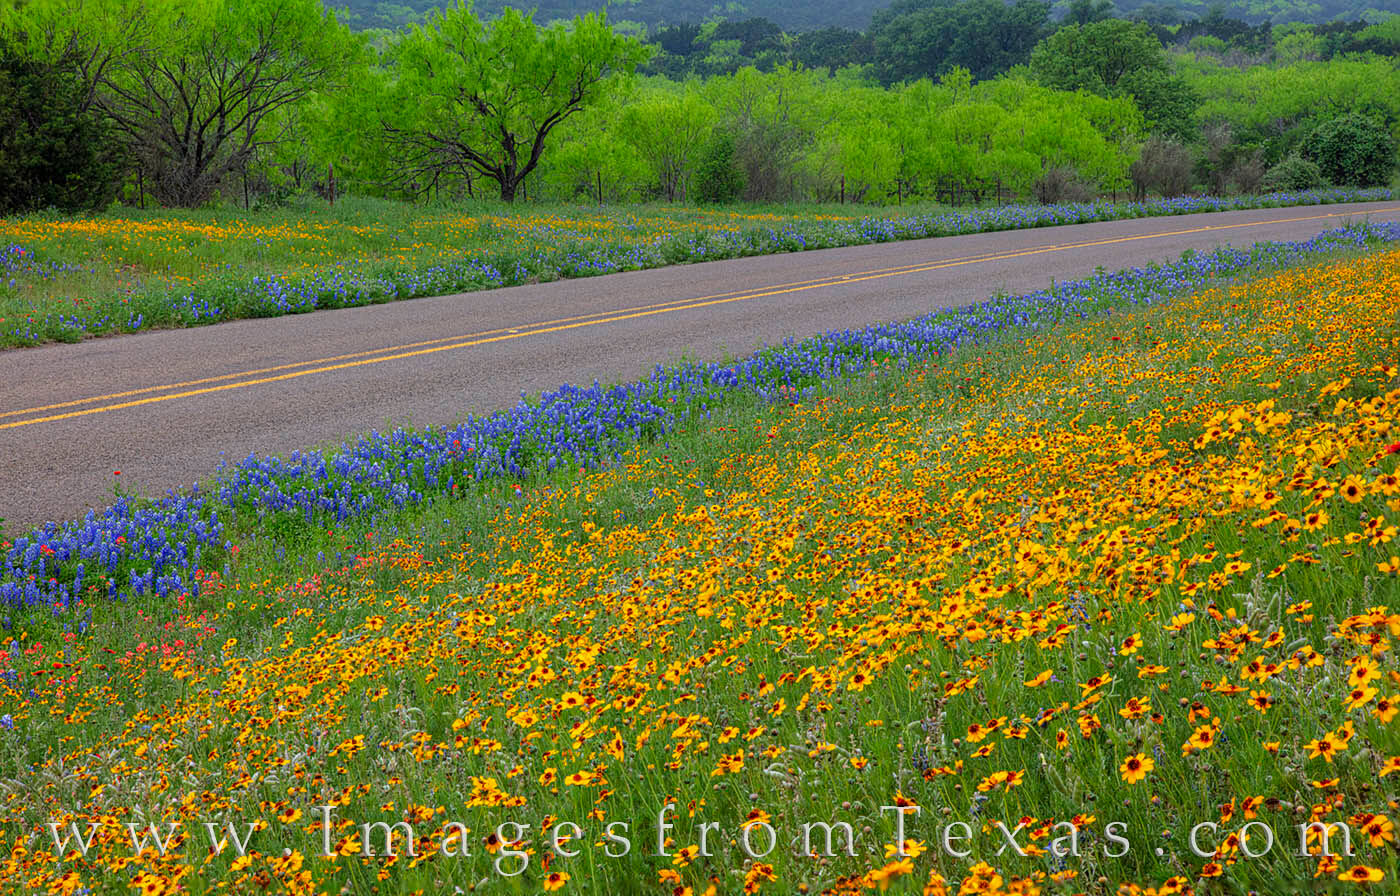 Along a small highway in the Texas Hill Country, Spring shows off its color with yellows, reds, and blues. Wildflowers were abundant...